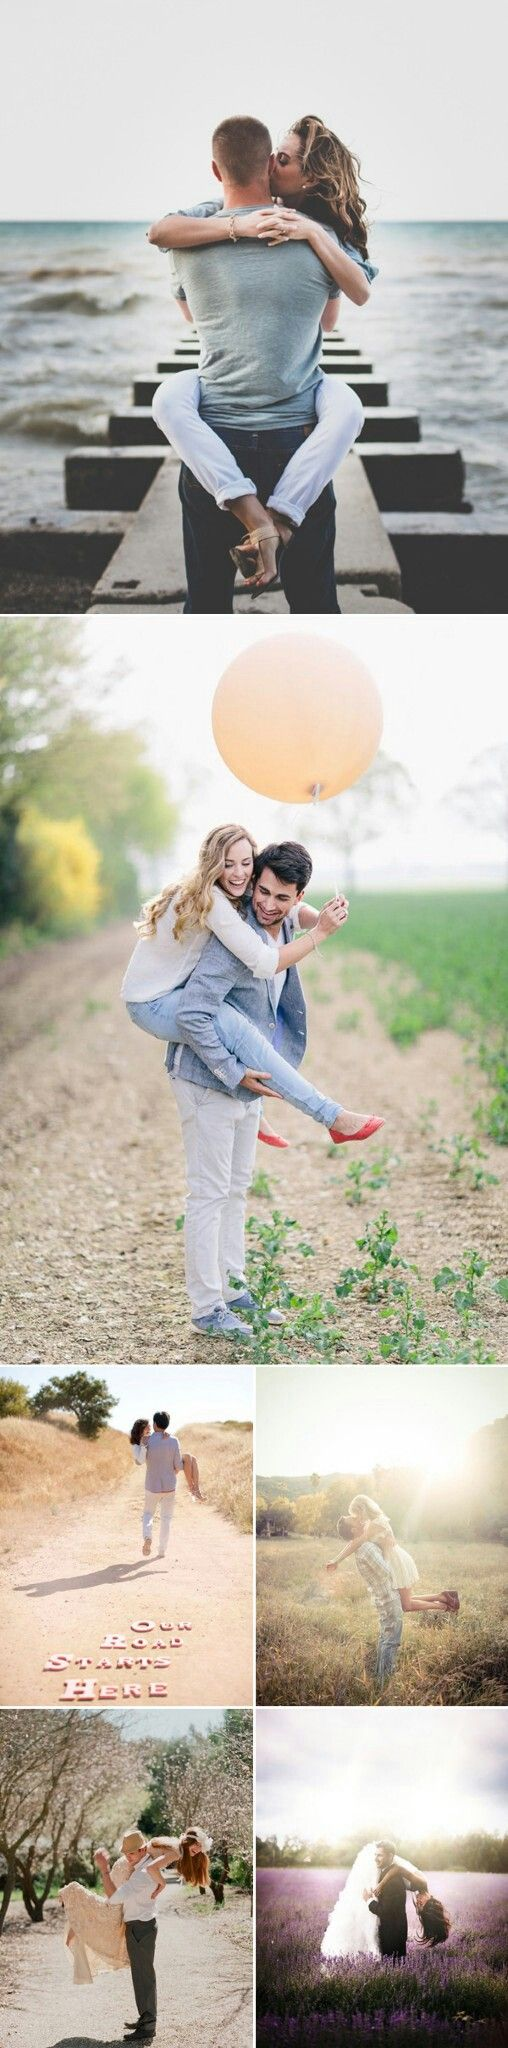 Lift and Carry | Engagement Photo Ideas